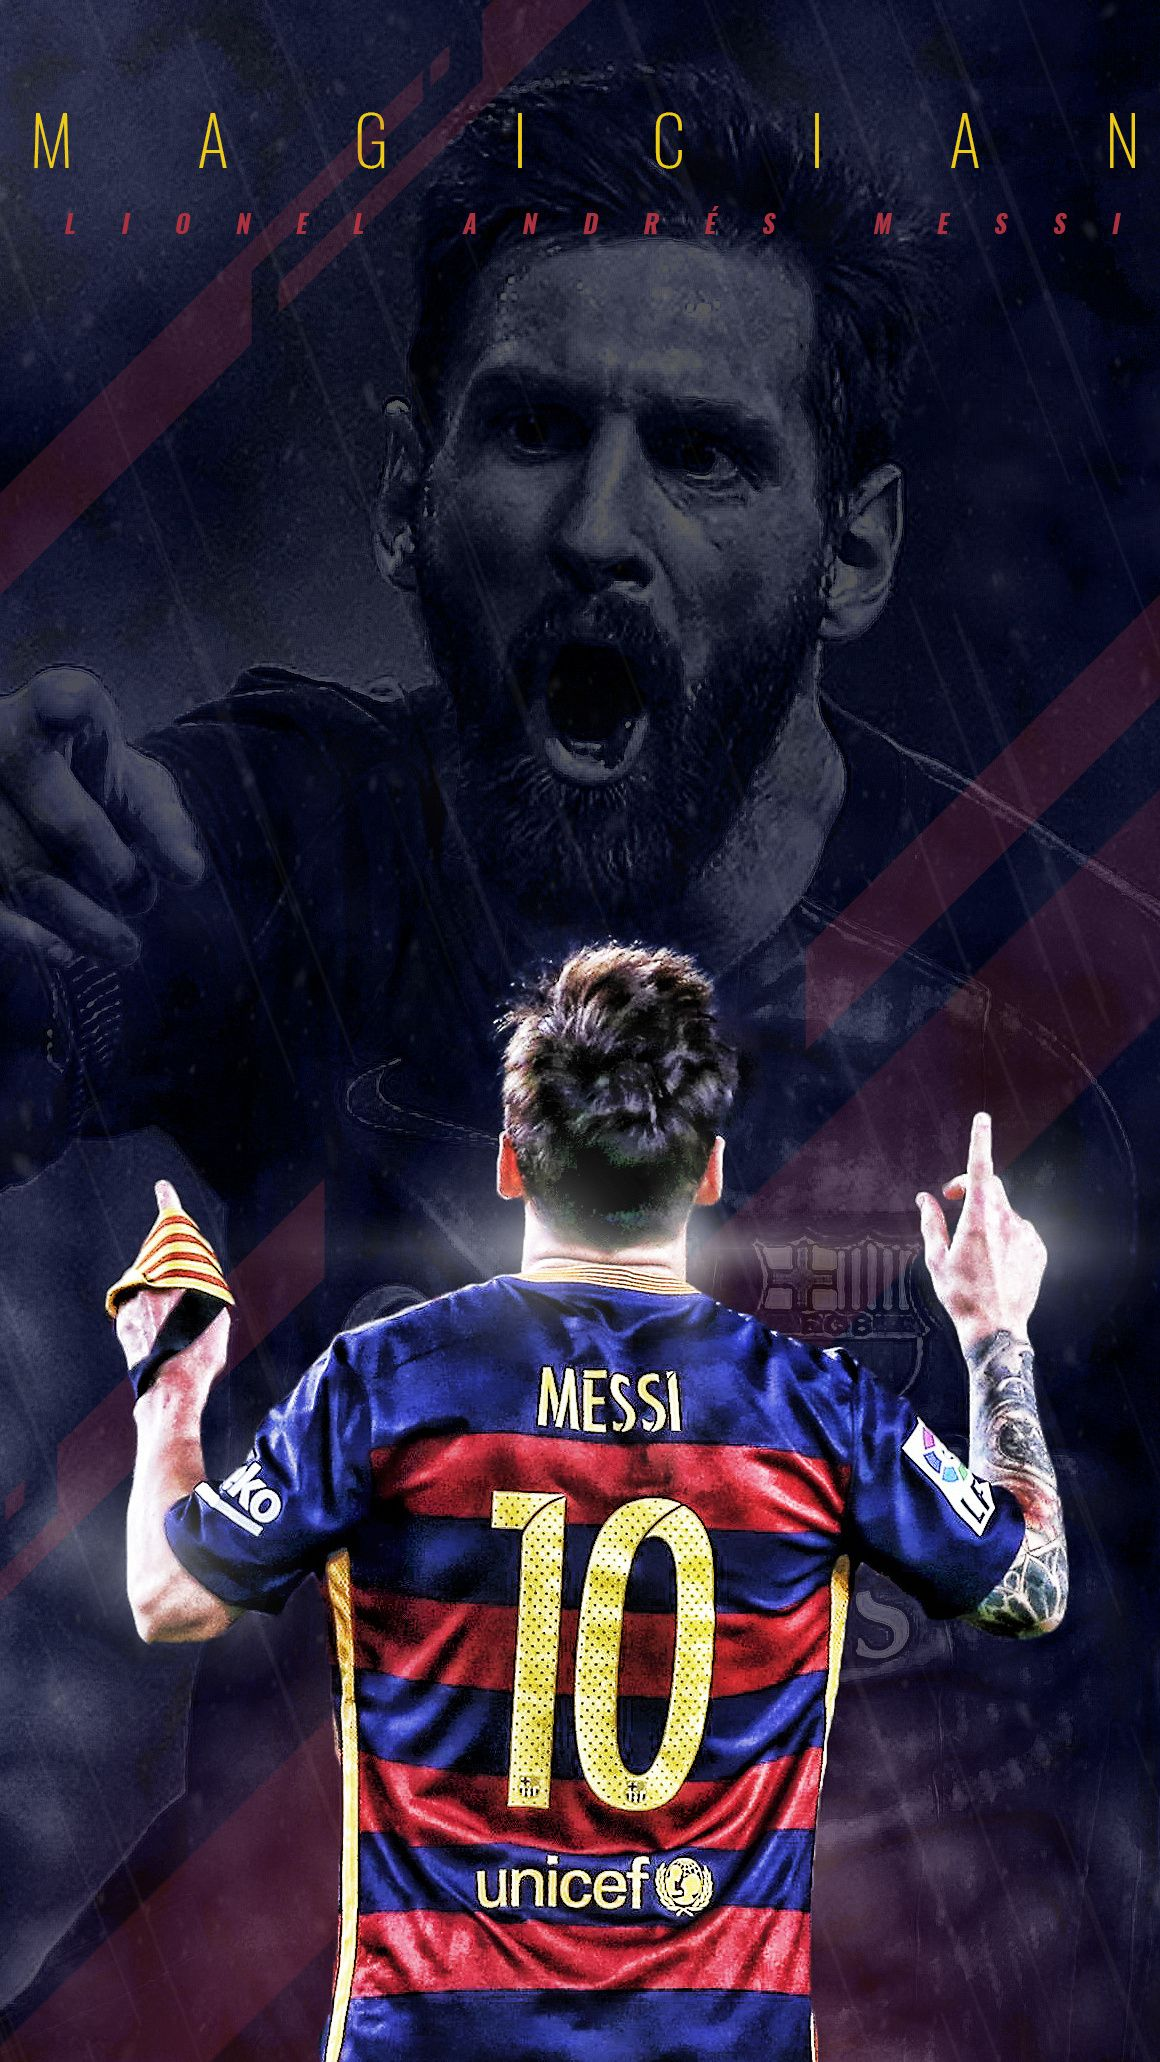 ᐅ 50 Lionel Messi Wallpapers Hd Download Background Images Of Messi 4k Lionel Messi Wallpapers Lionel Messi Messi